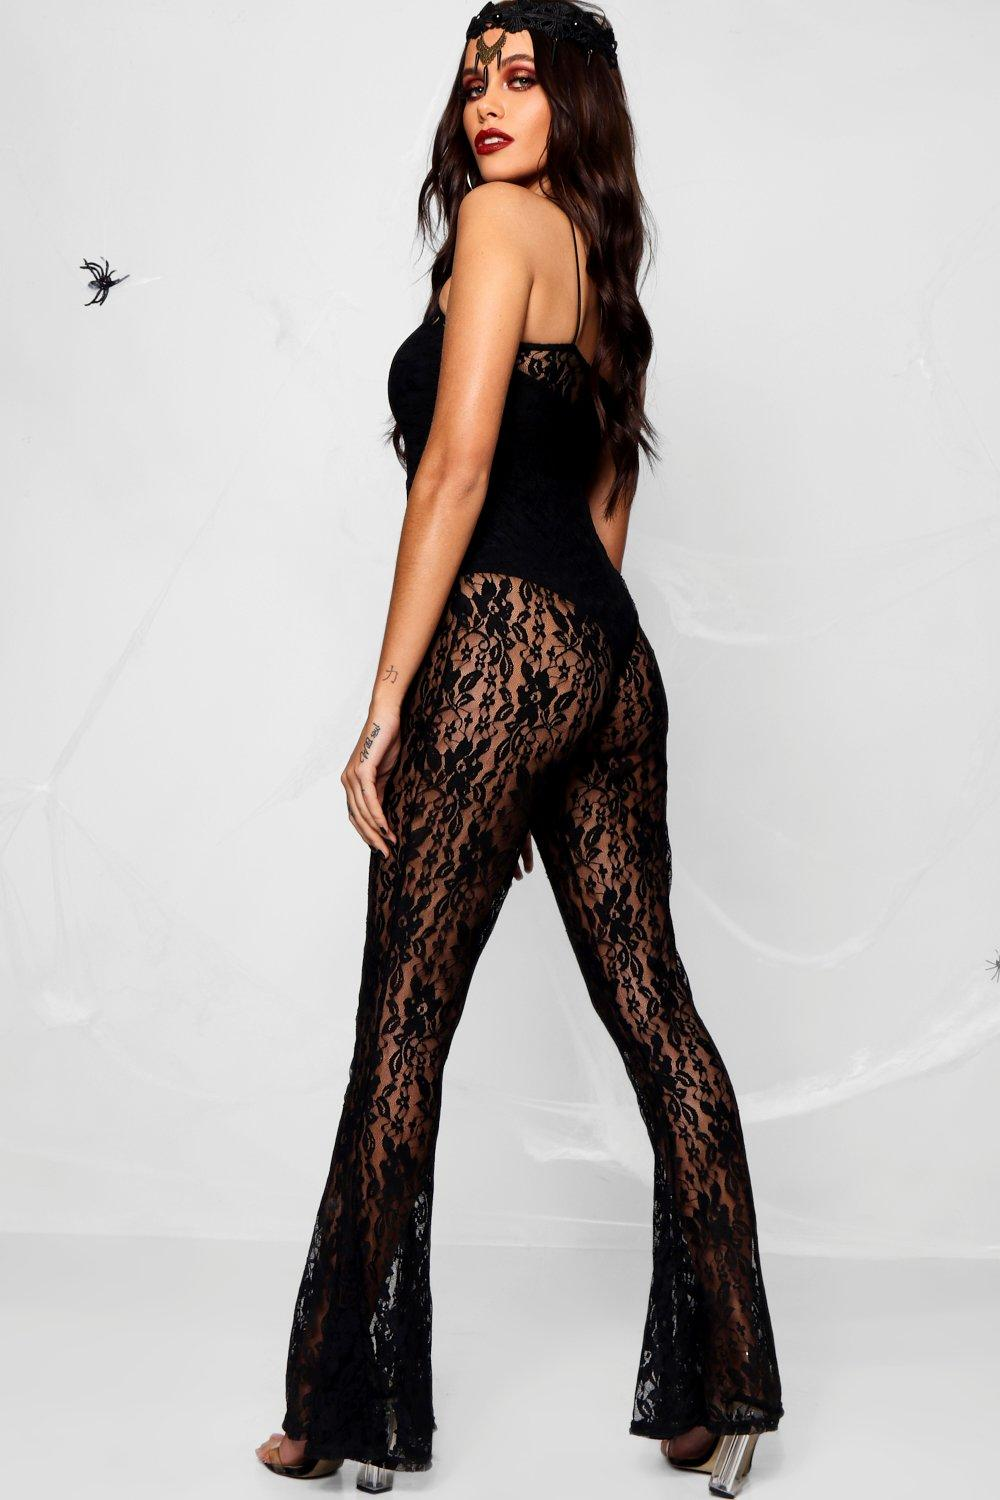 Lace Jumpsuit Strappy Halloween Flared black Ow5ZAxqf8n